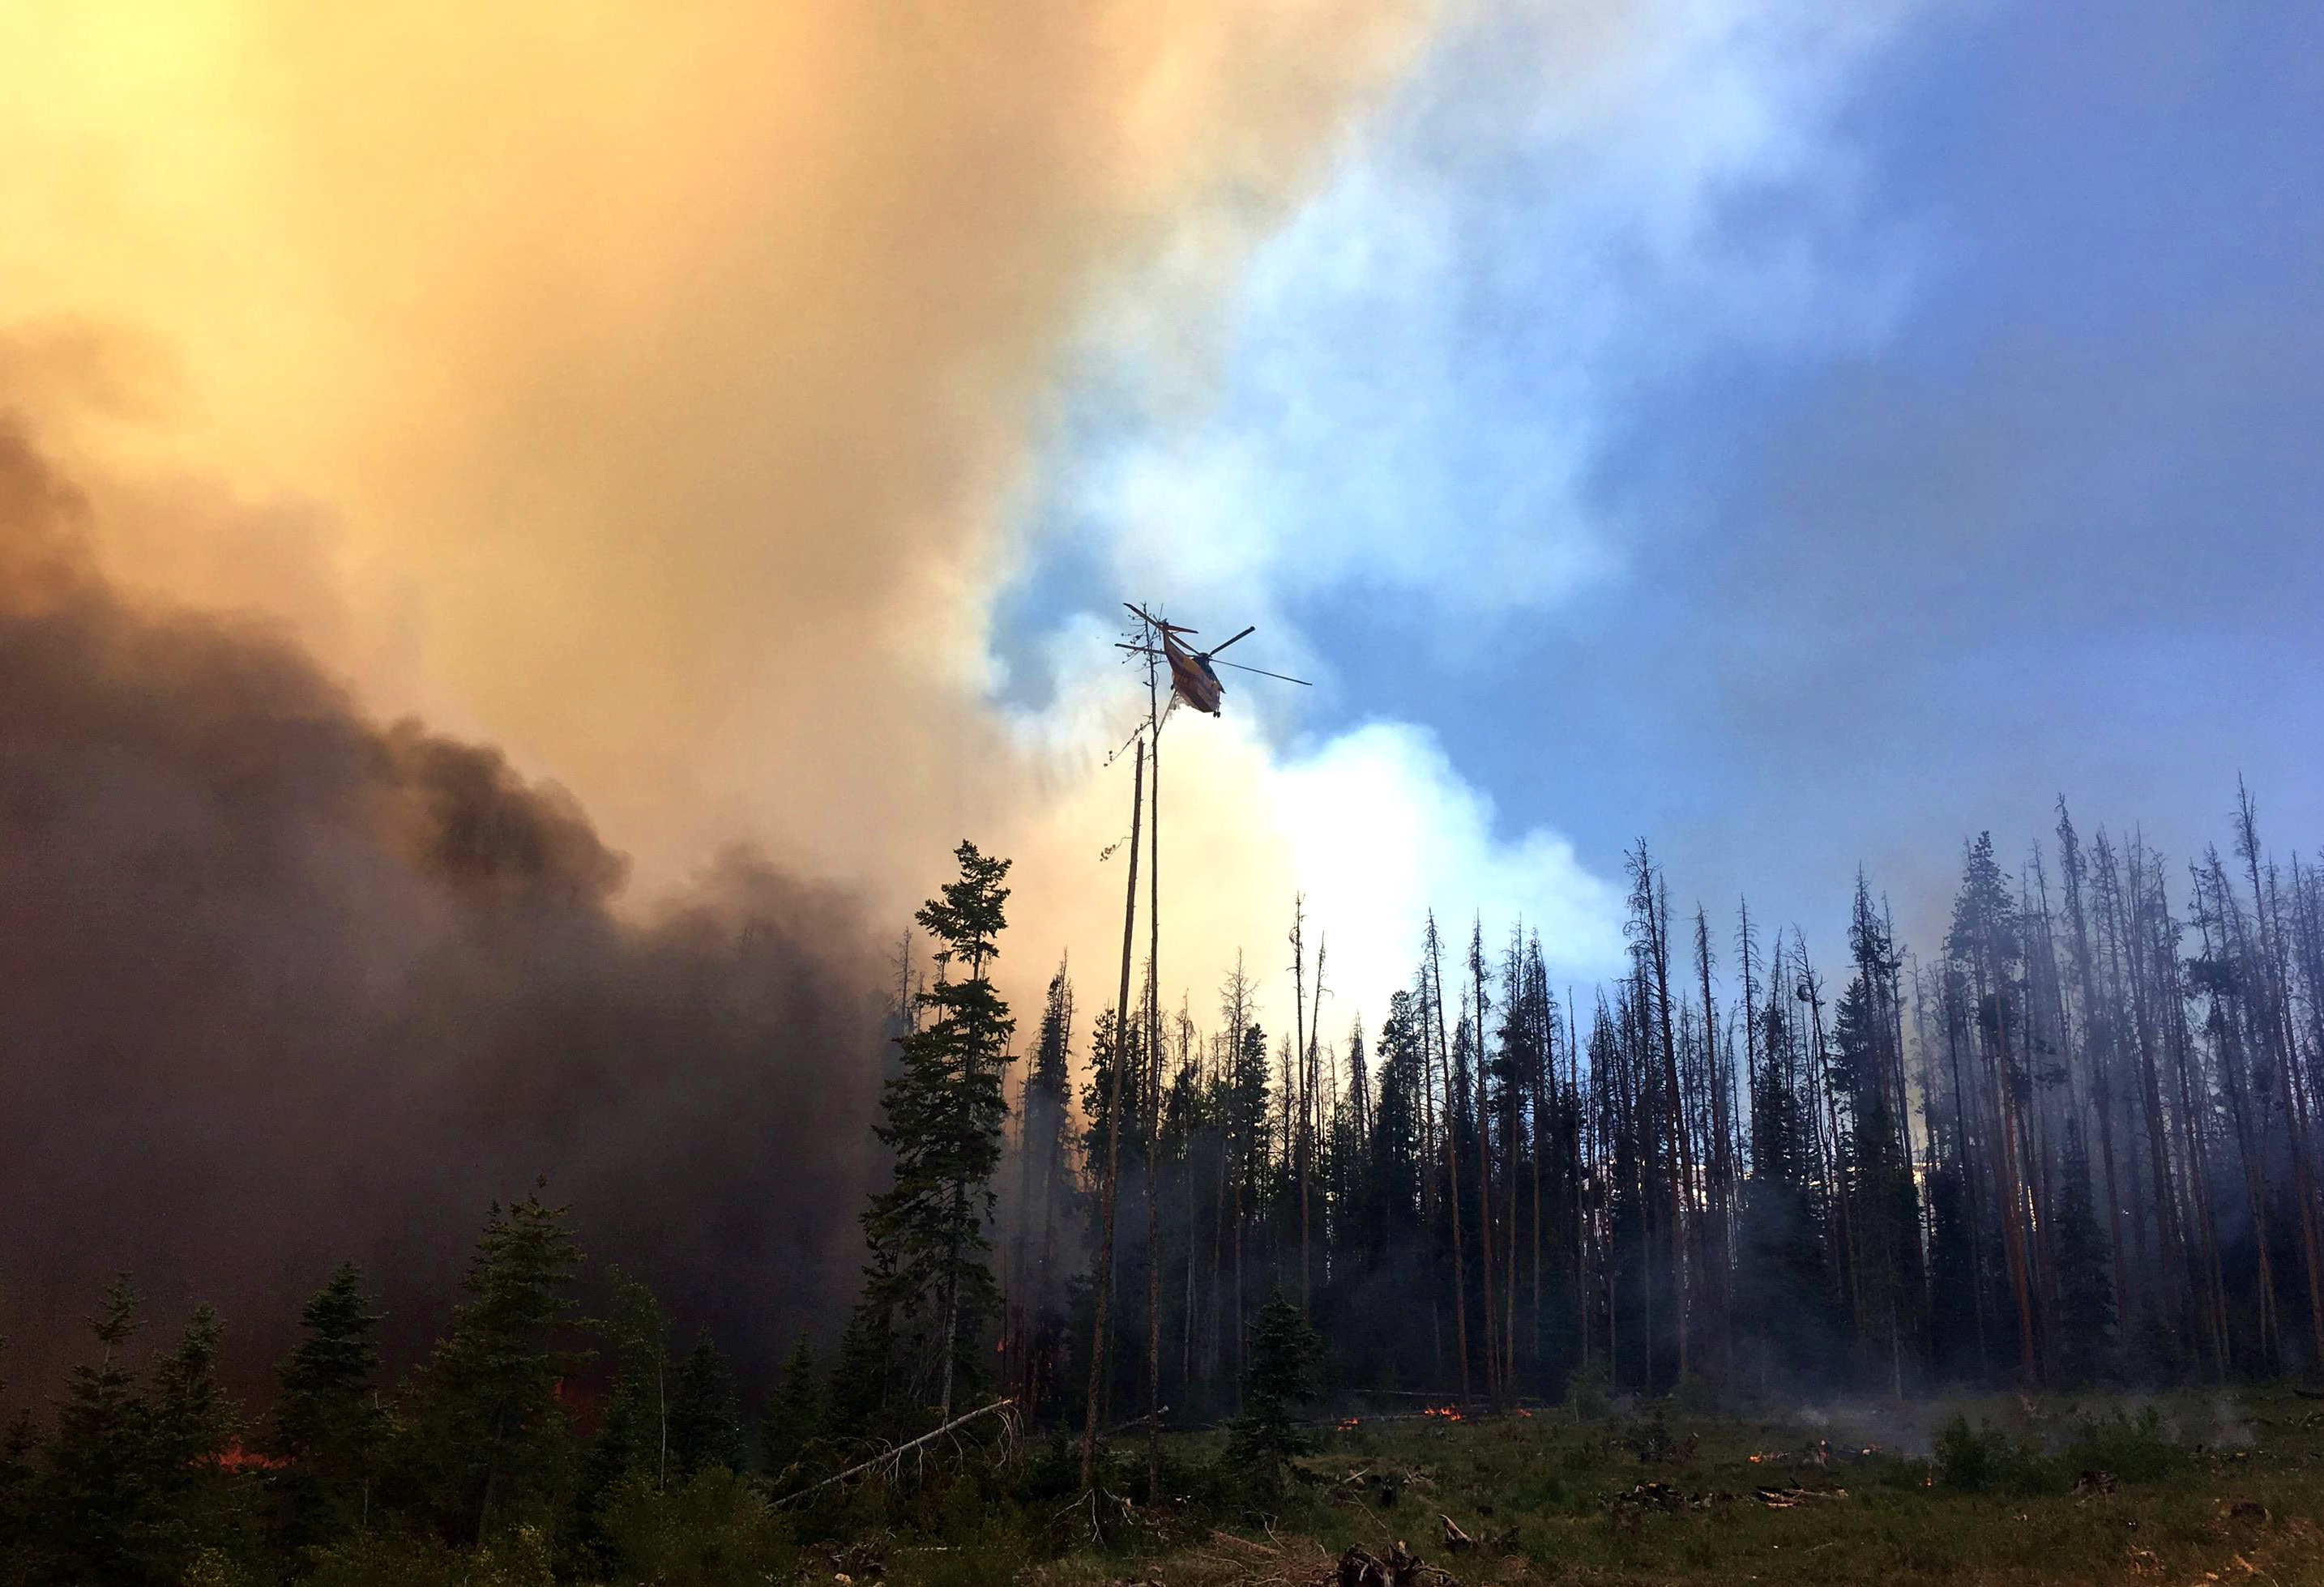 Photo: Smoke rises from forest as helicopter drops water.